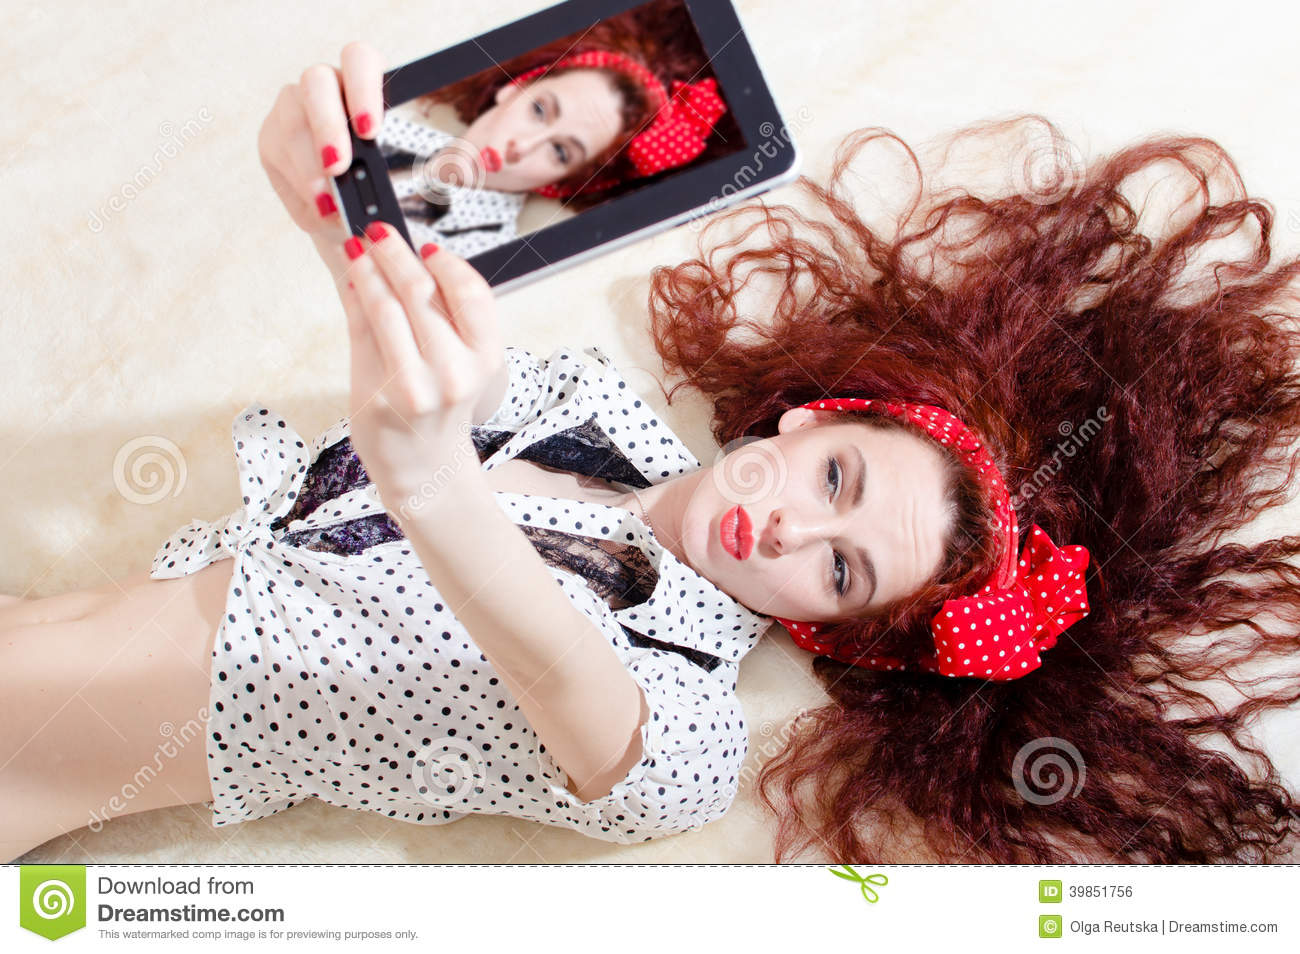 Beautiful young attractive woman pinup girl lying and taking selfy or selfie picture on digital tablet computer